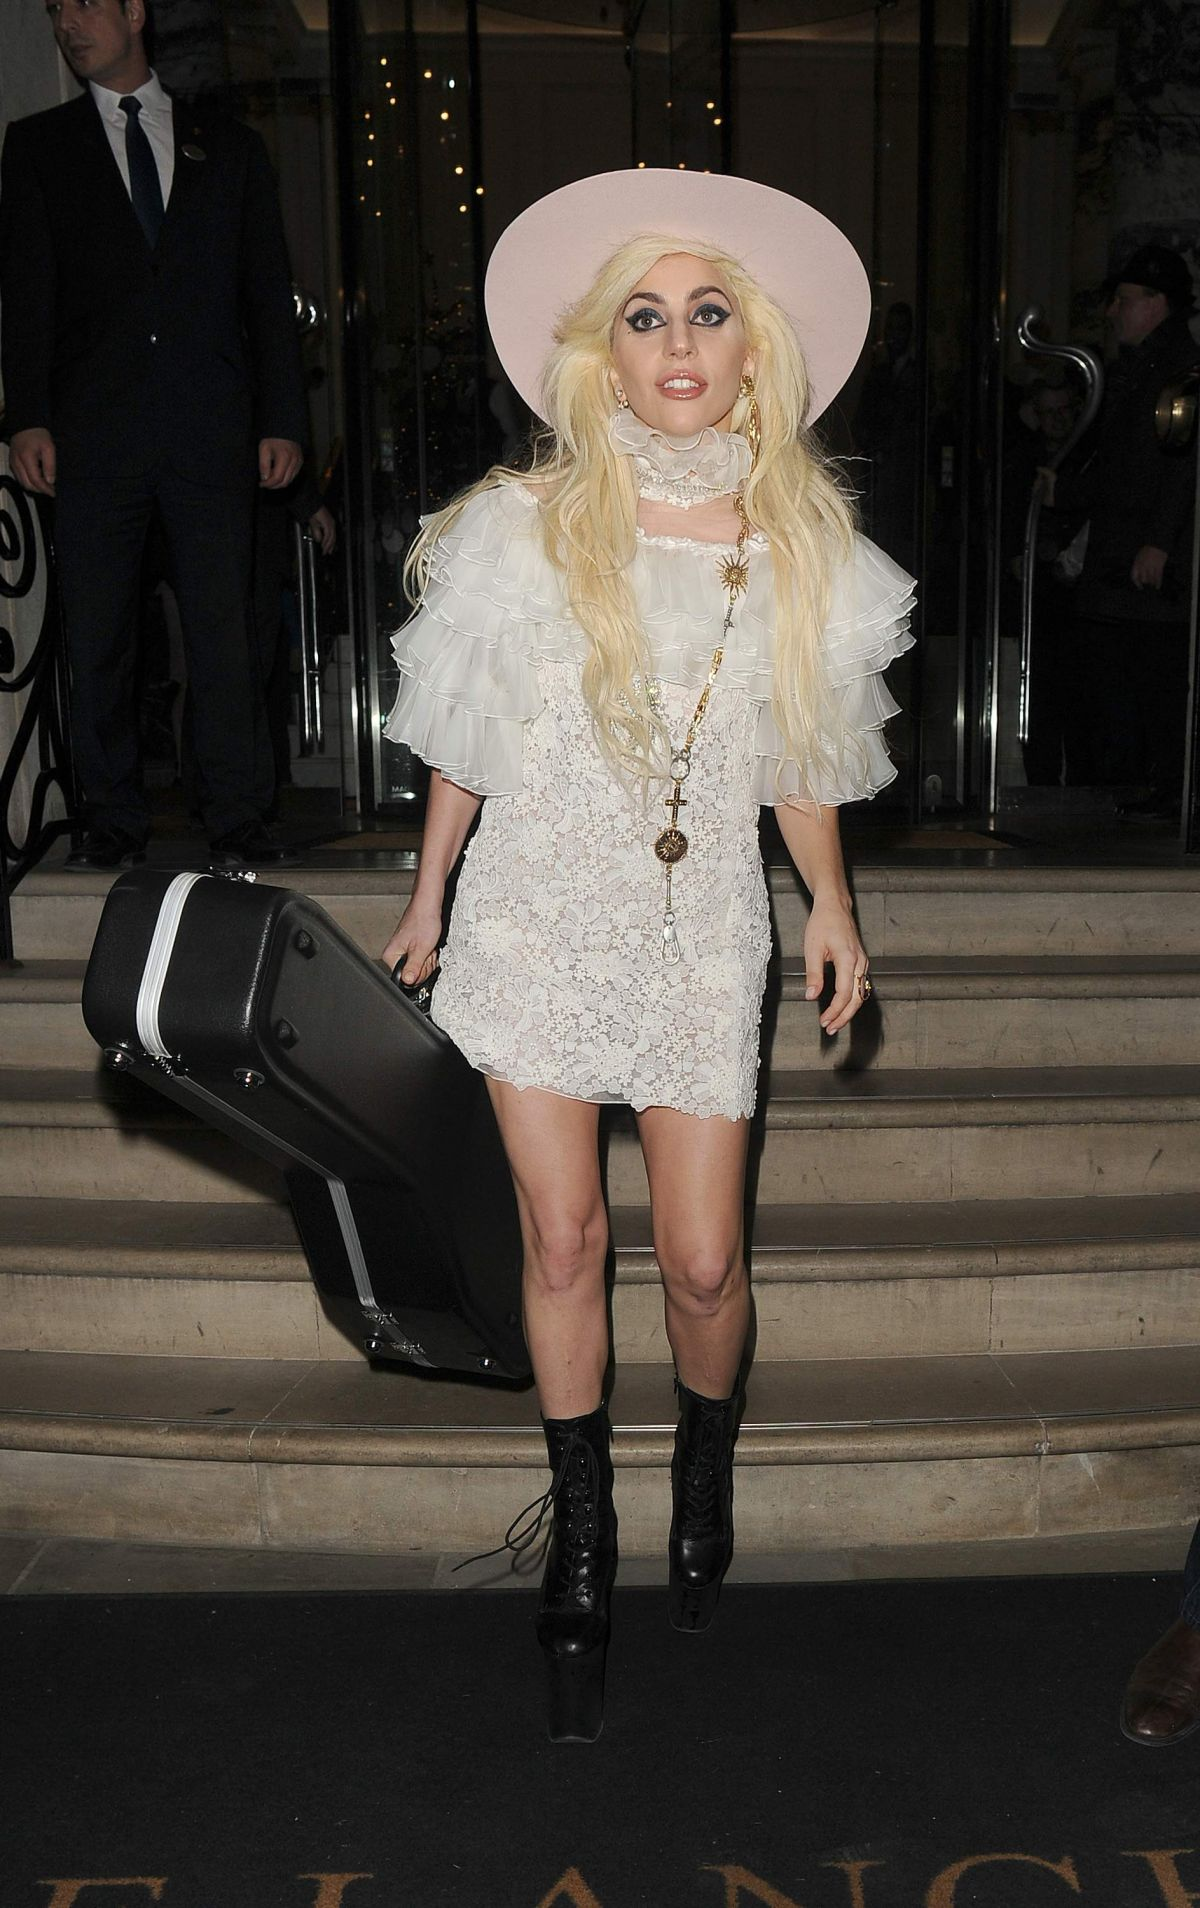 lady-gaga-leaves-her-london-hotel-guitar